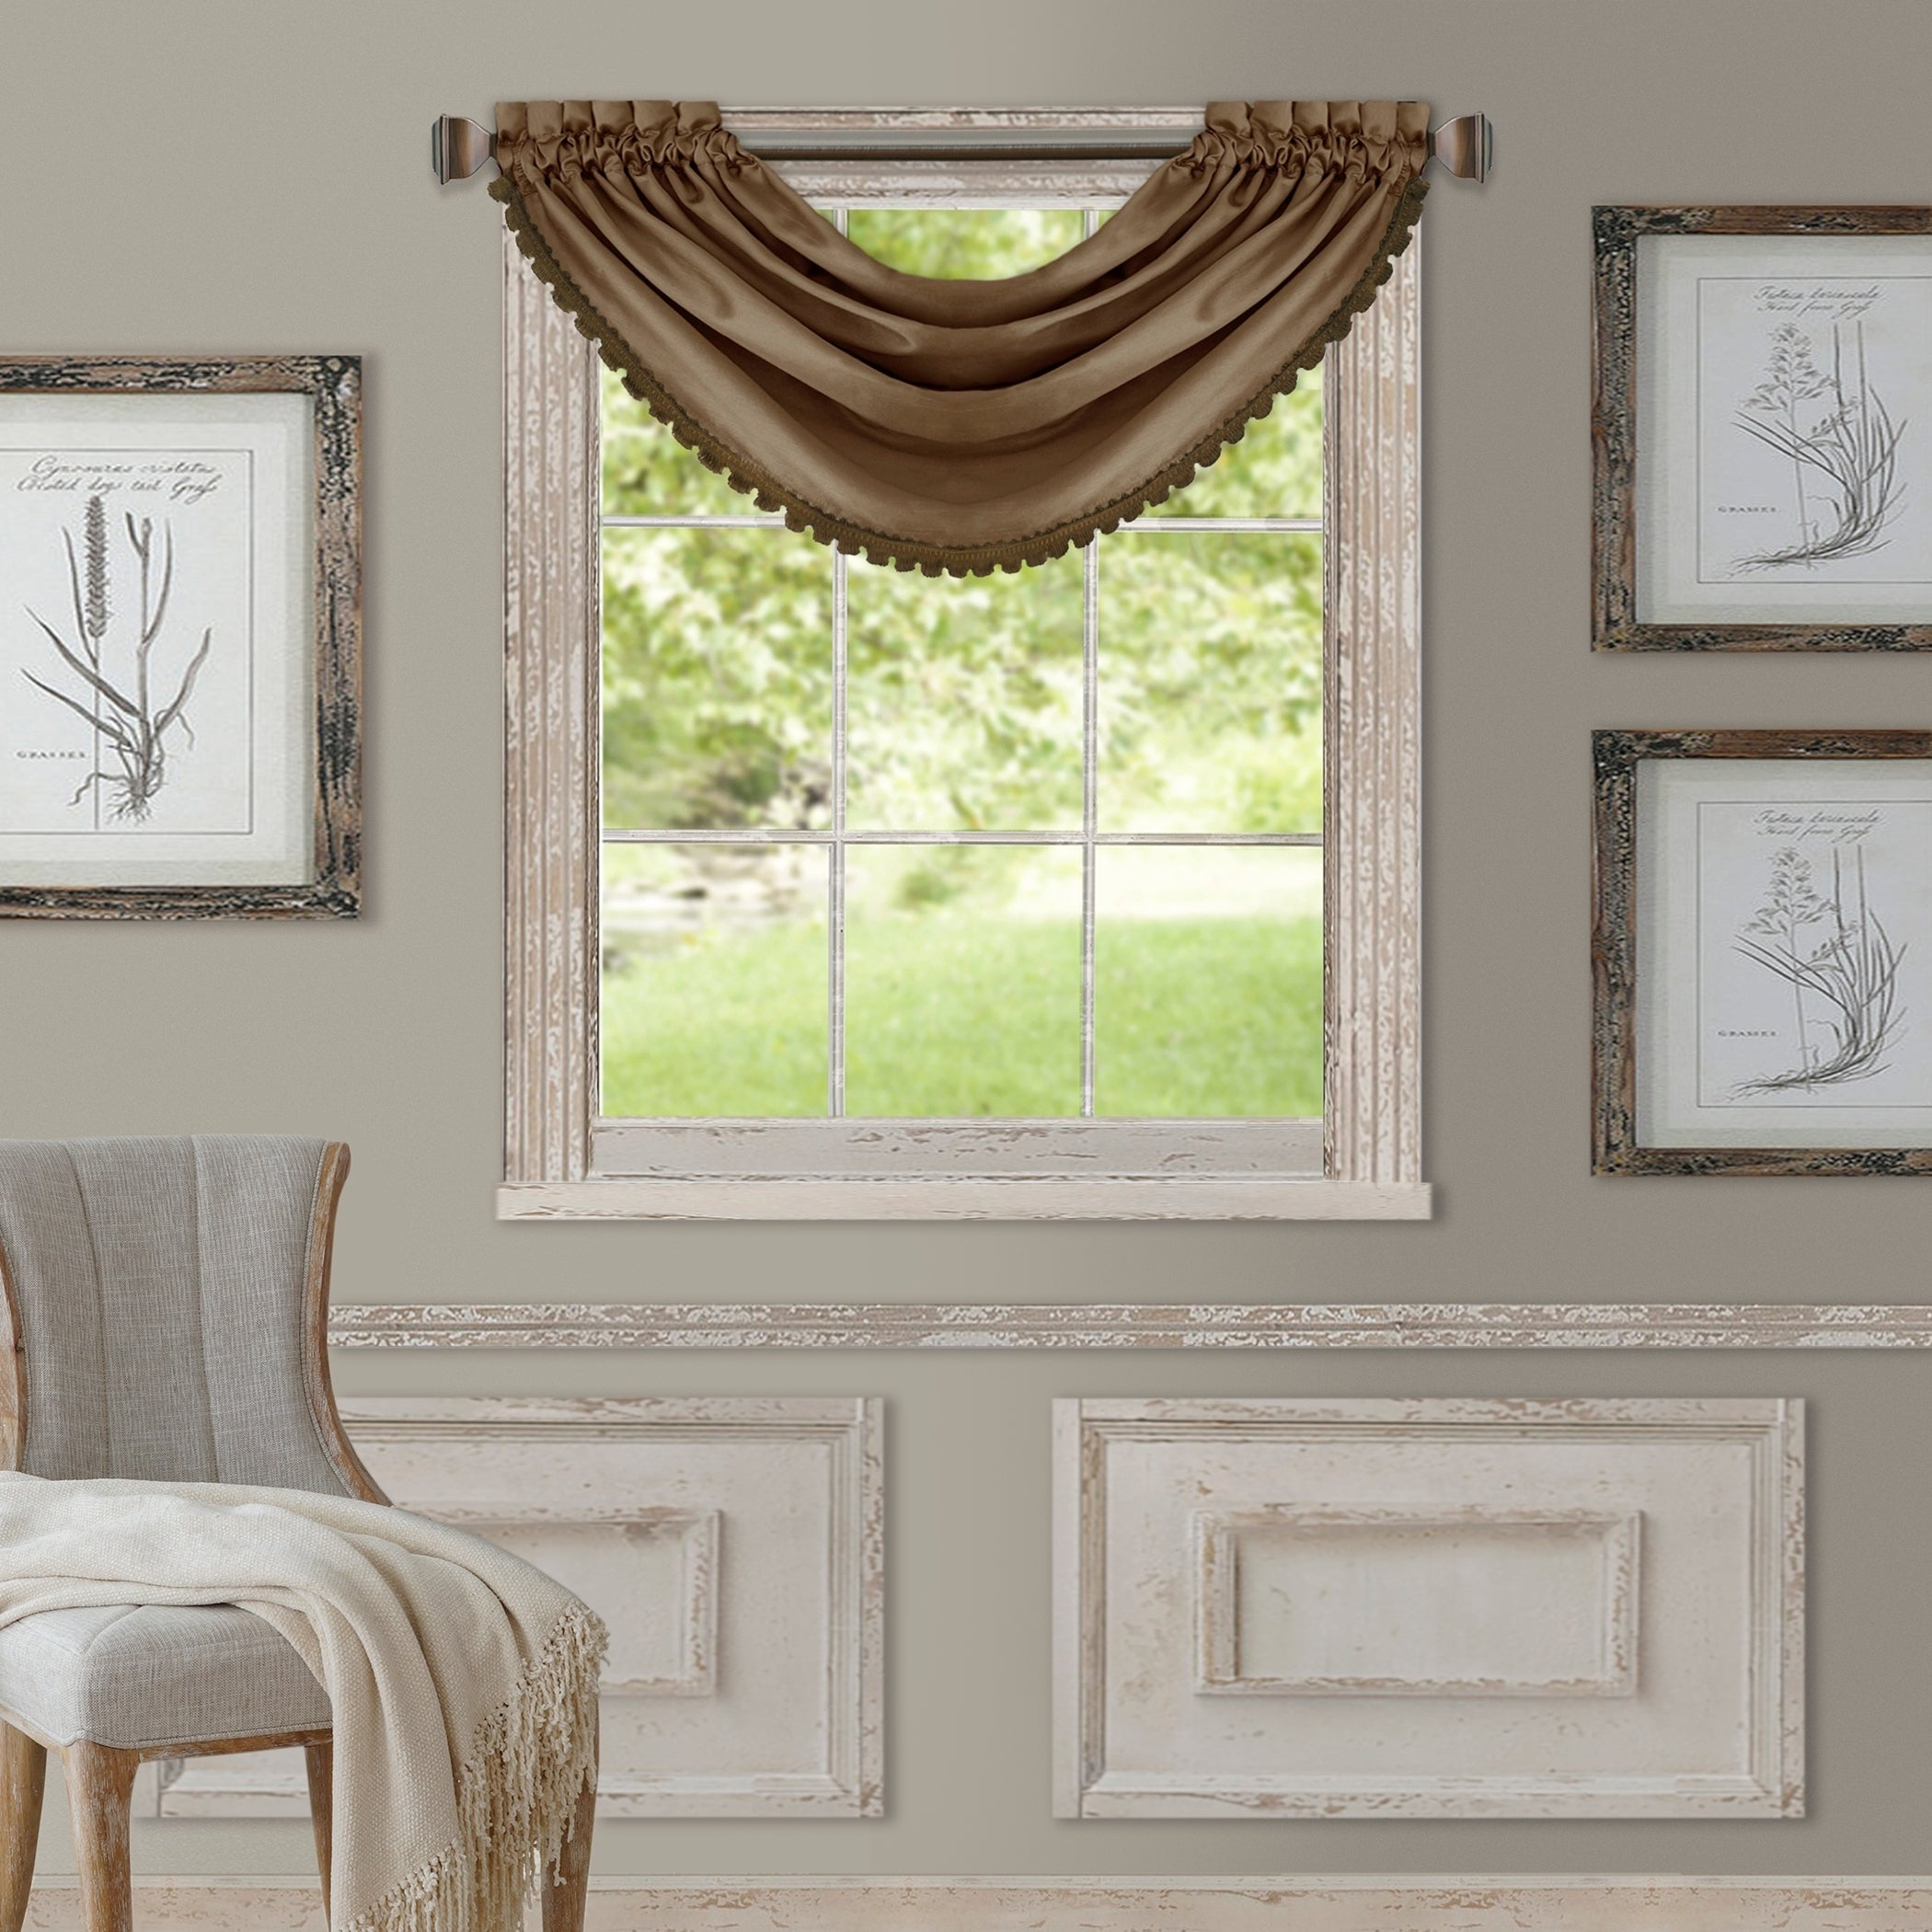 of with curtainss dark where lace buy home store and valance satin teal inspect size concord kitchen waterfall darcy curtain curtains large to valances window black gray x drapes walmartcom